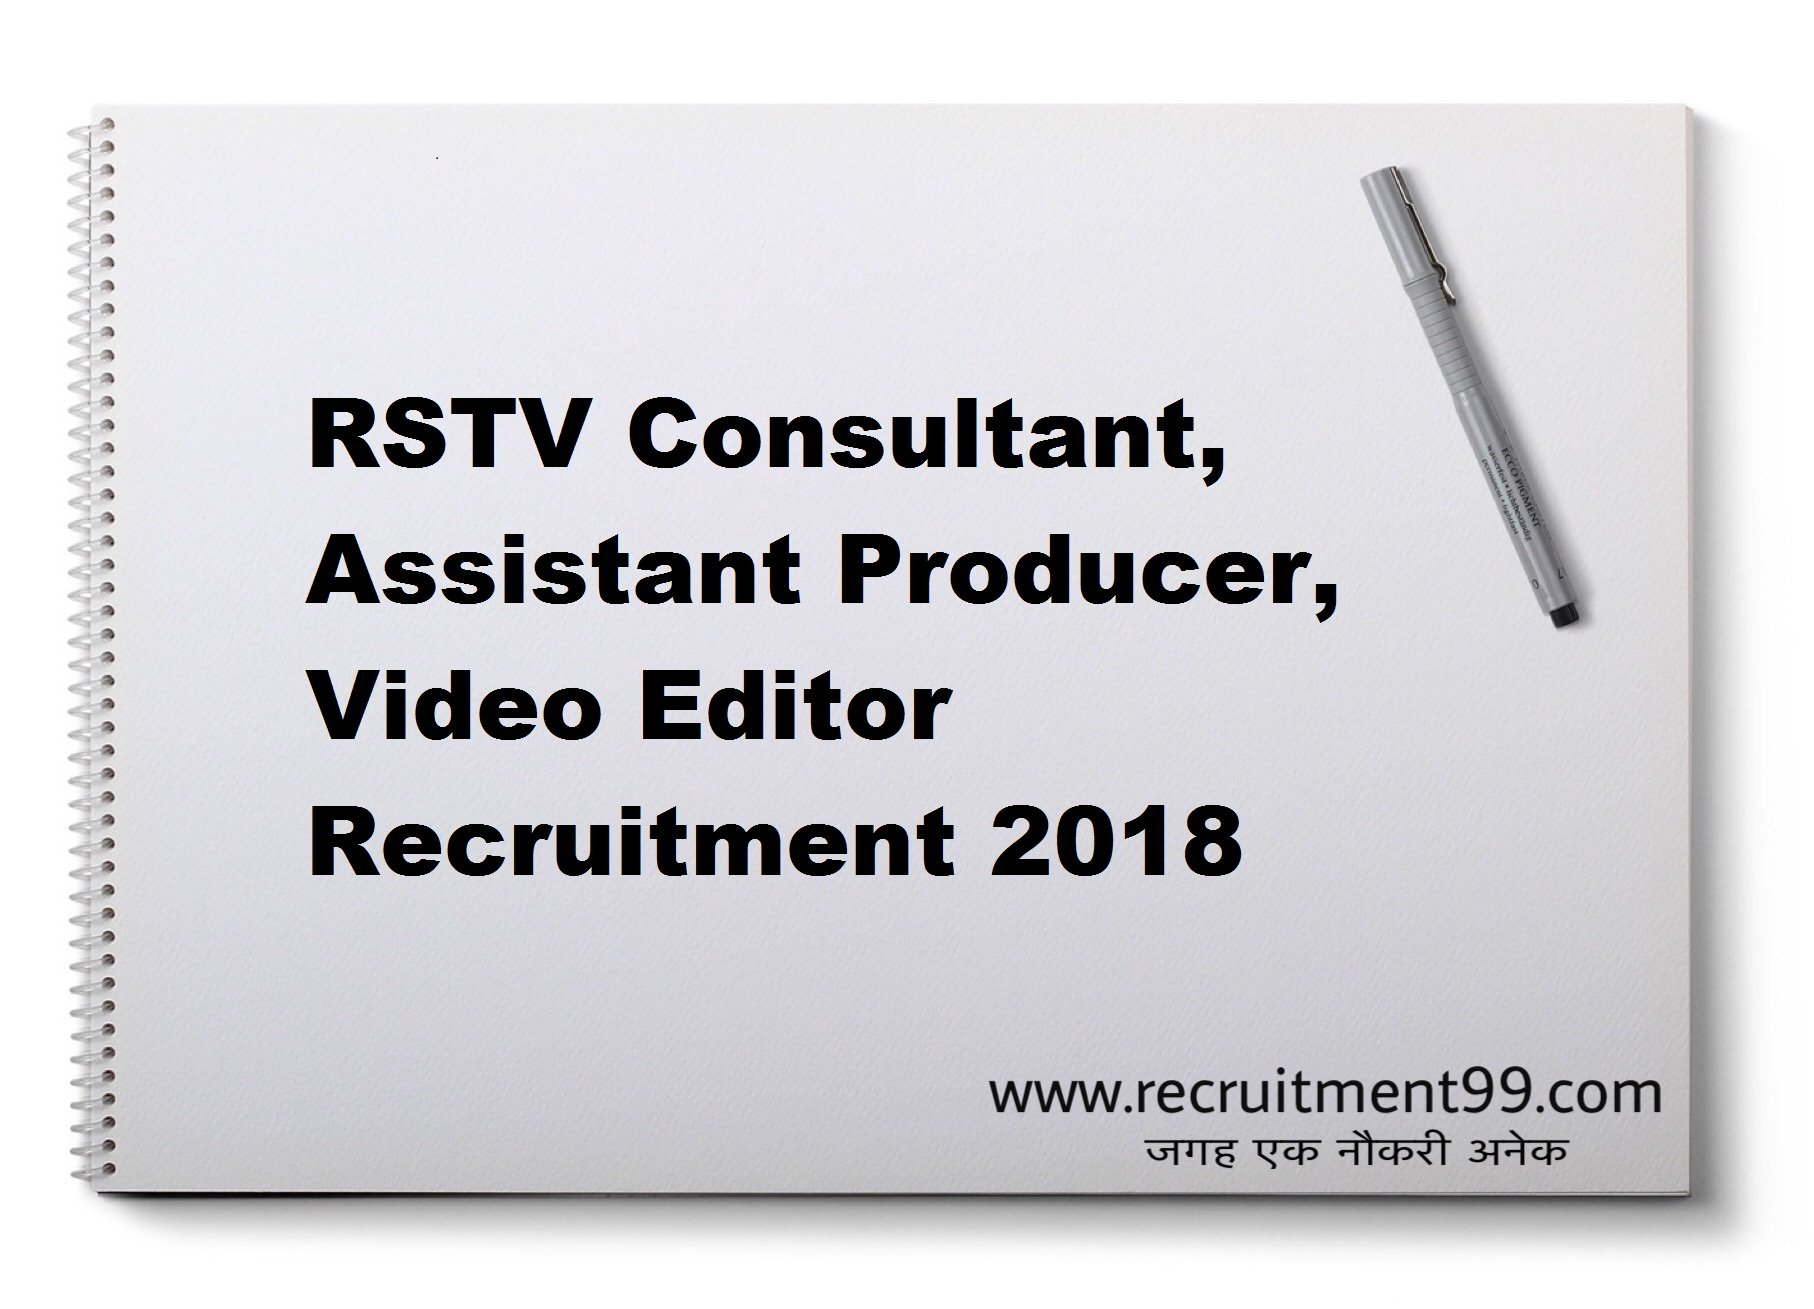 RSTV Consultant Assistant Producer Video Editor Recruitment Admit Card & Result 2018